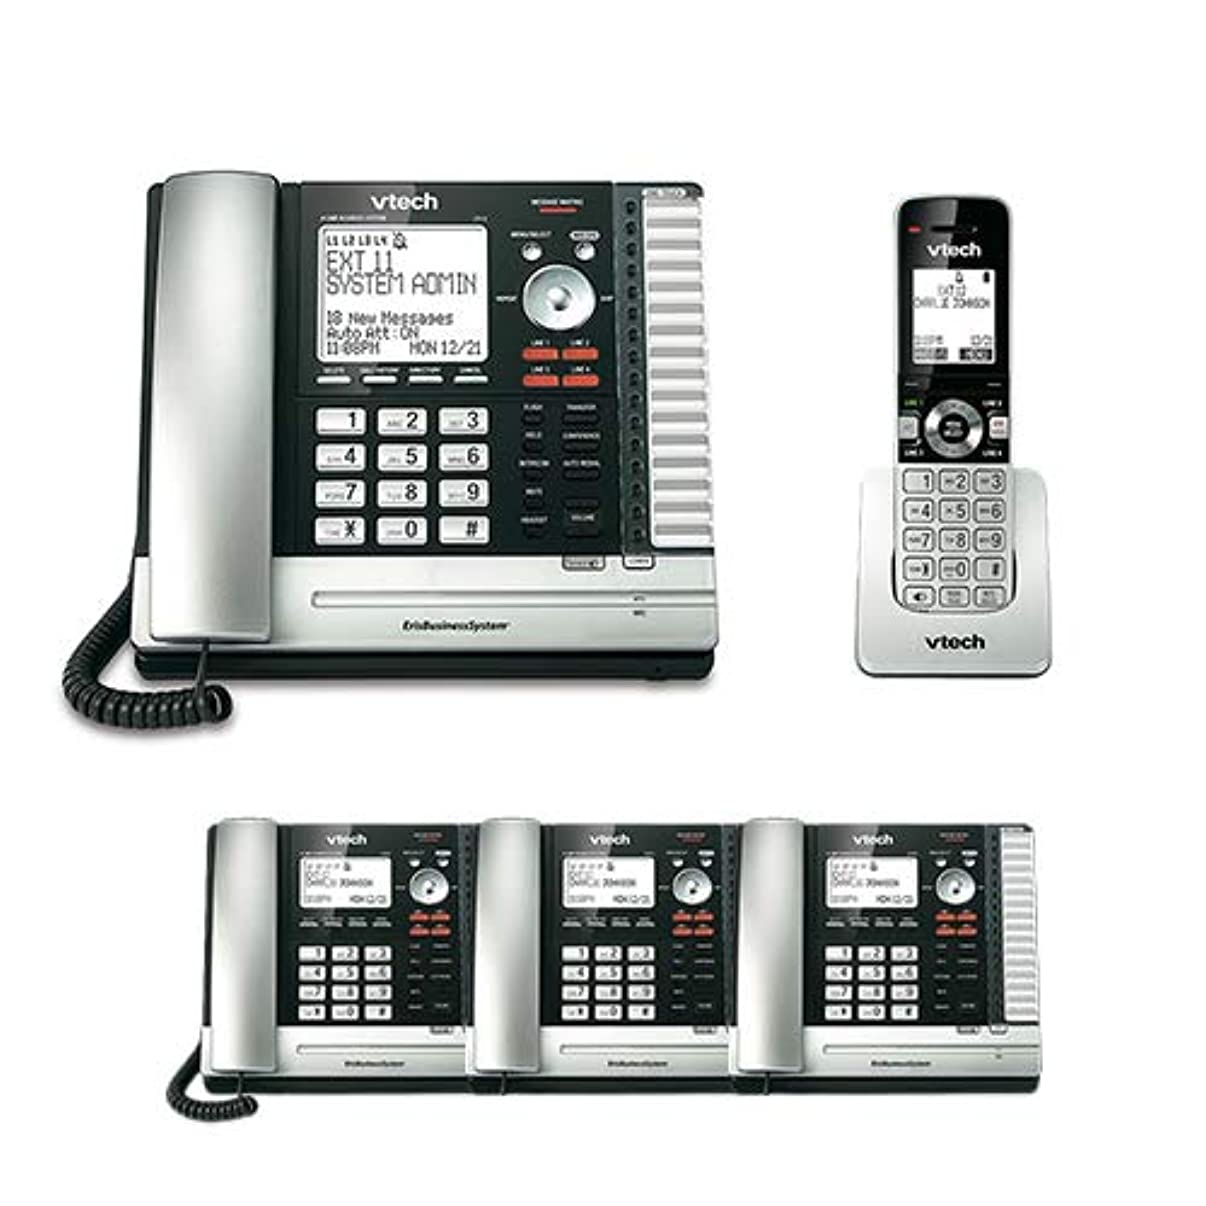 VTech UP416 Office Bundle Corded Phone System with (3) UP406 Corded Extension Deskset and UP407 Cordless Handset